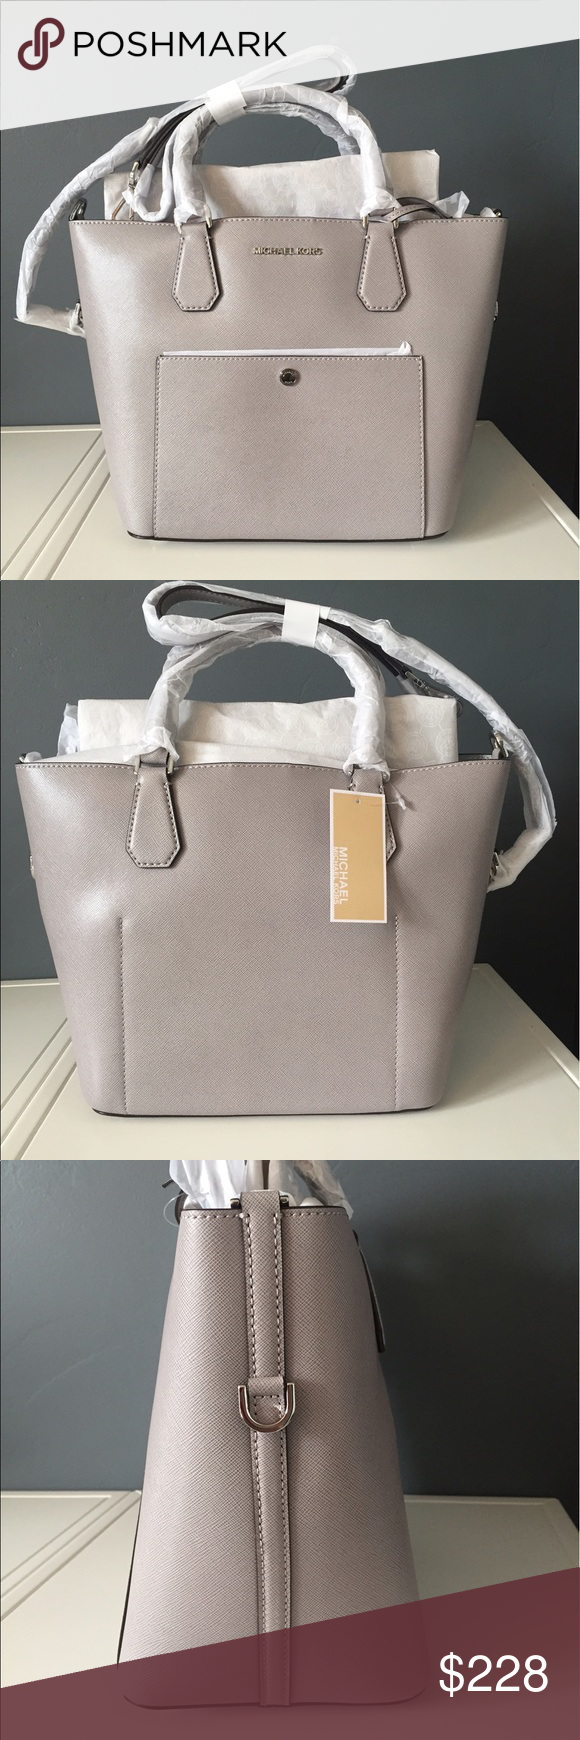 da832a6982 ️ONE DAY SALE‼️Michael Kors Large Grab Bag Gorgeous brand new with ...